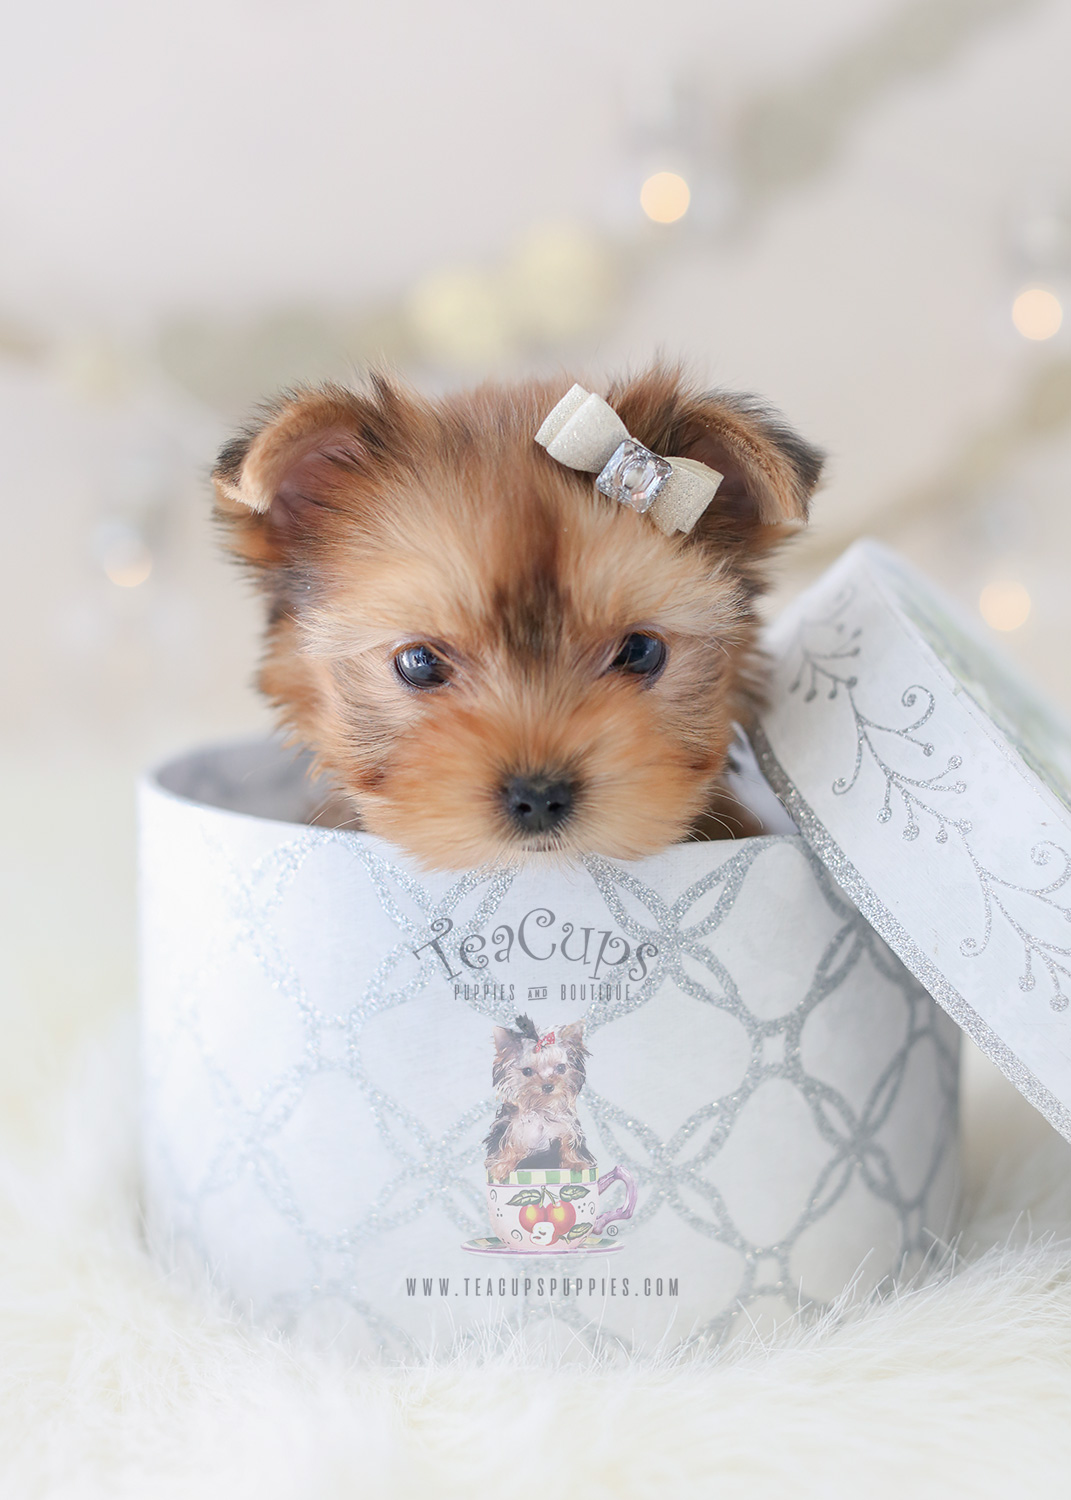 golden yorkie puppies adorable maltese here teacups puppies boutique 5506